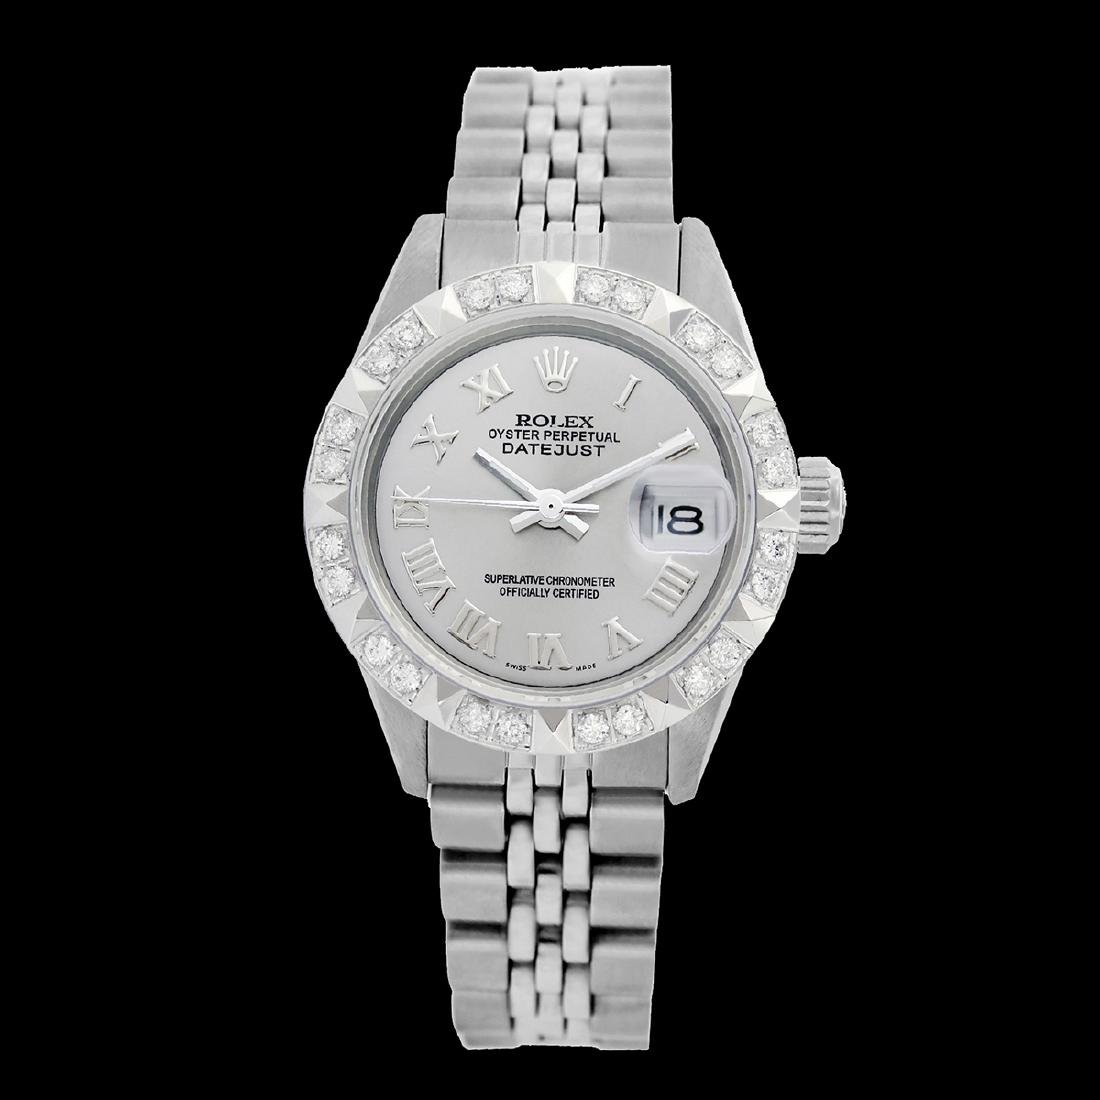 Rolex Ladies Stainless Steel, Roman Dial with Pyrimid - 2